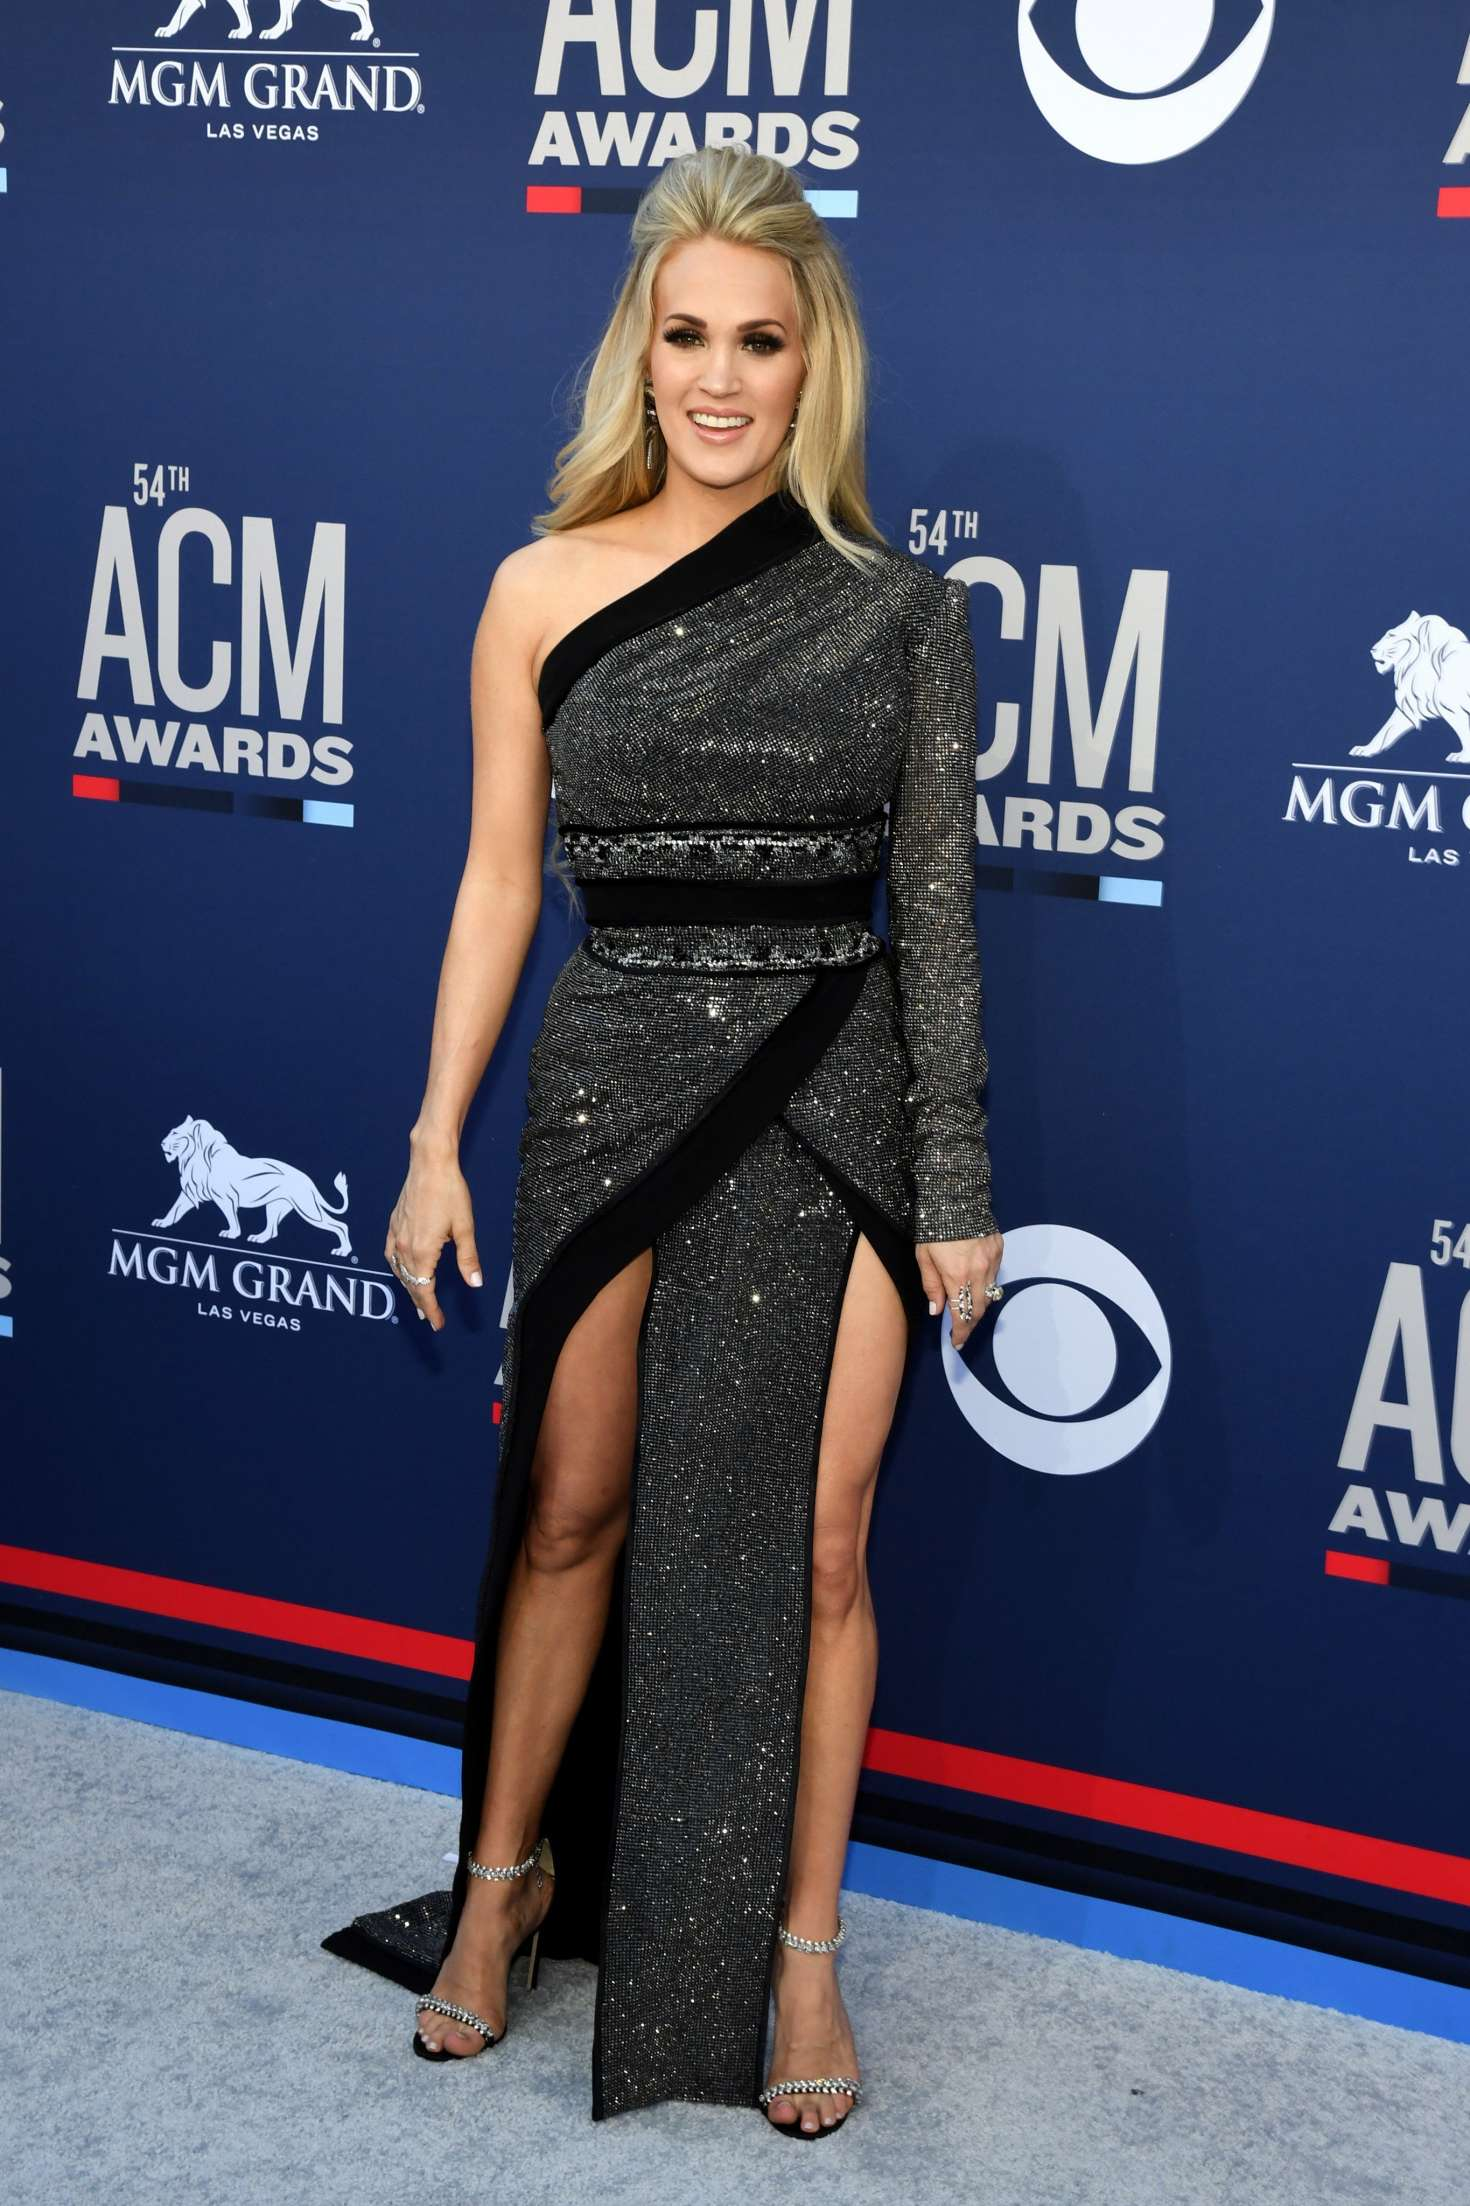 Carrie Underwood 2019 : Carrie Underwood: 2019 Academy of Country Music Awards -01